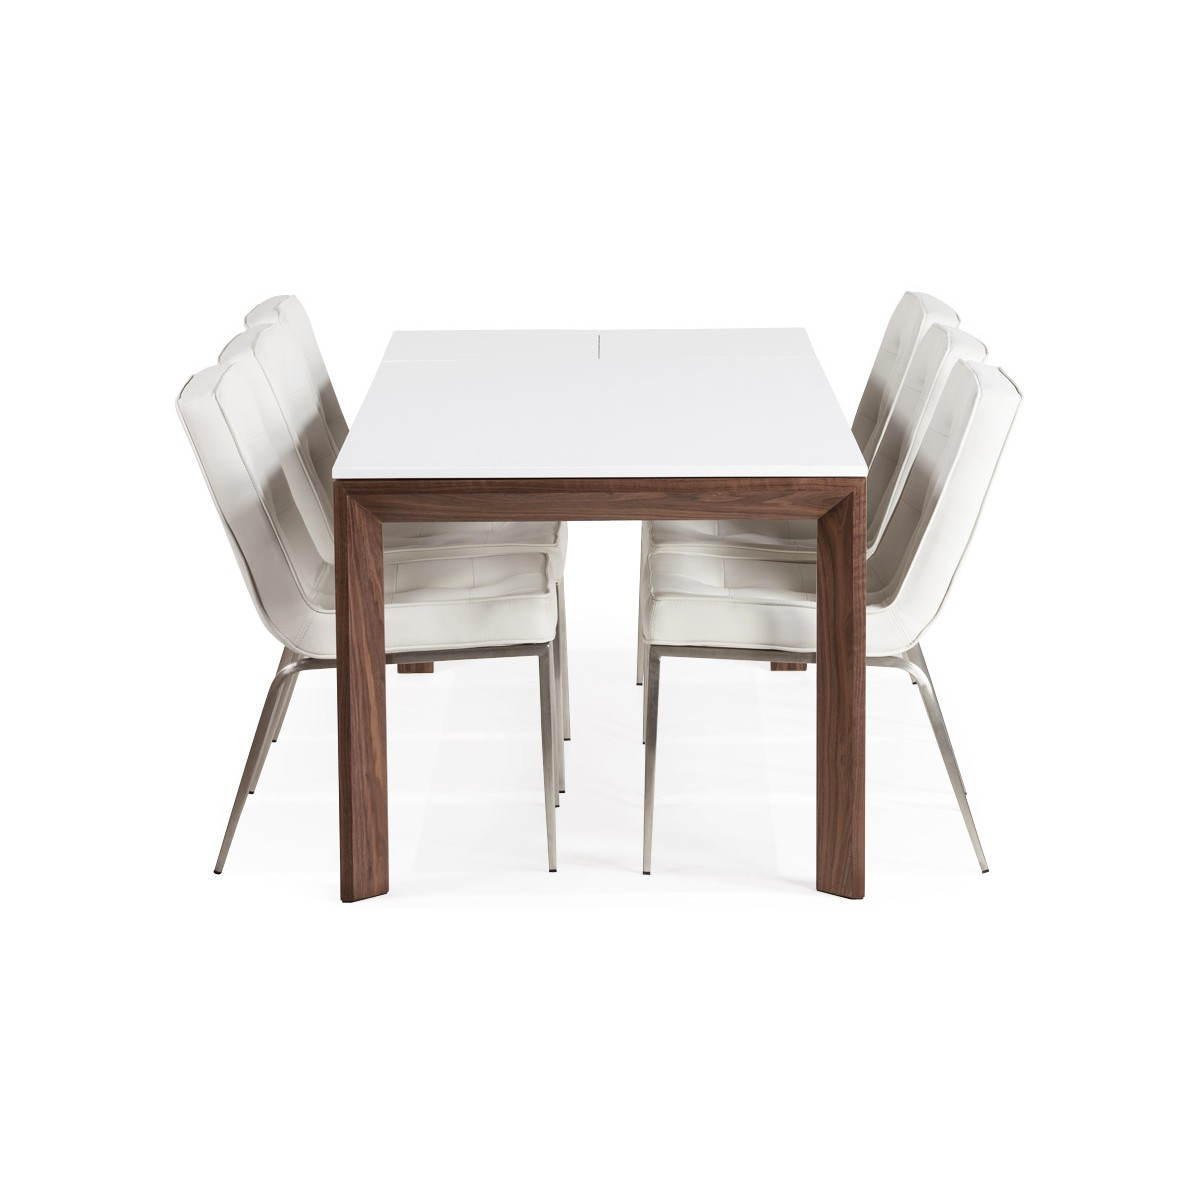 Table bois rallonge ikea - Table rectangulaire a rallonge ...